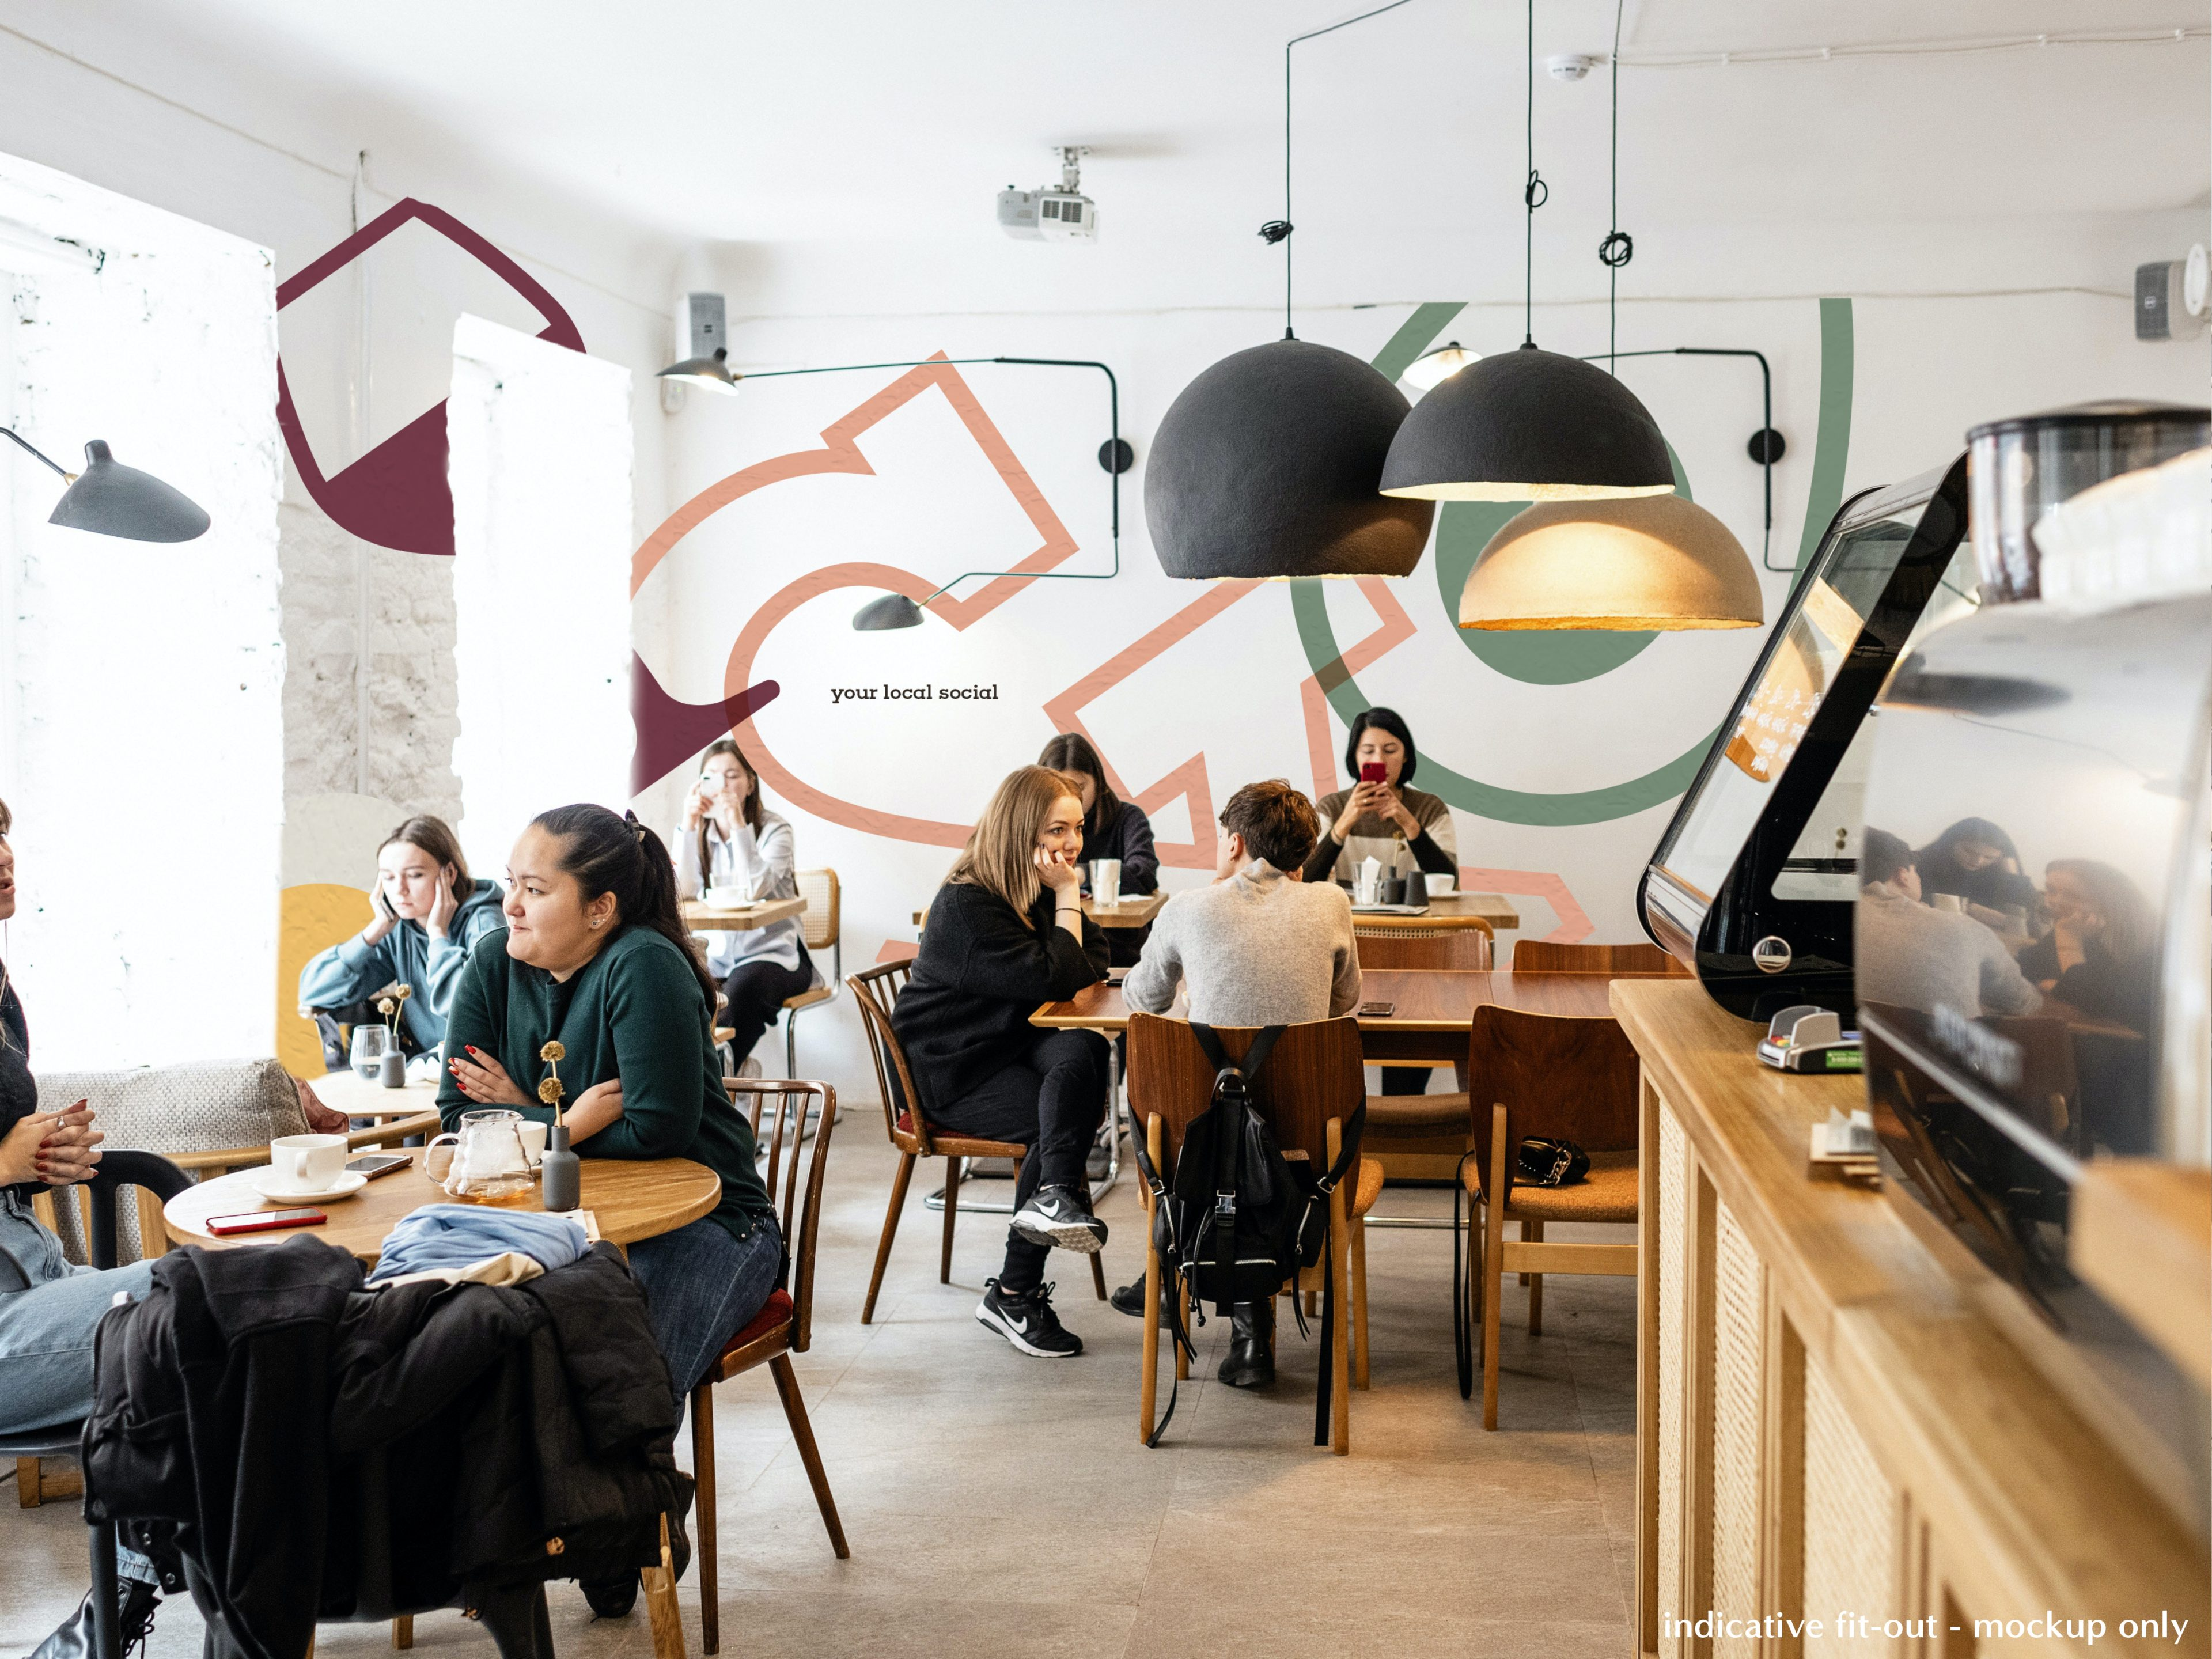 Mockup Image of the inside of the cafe